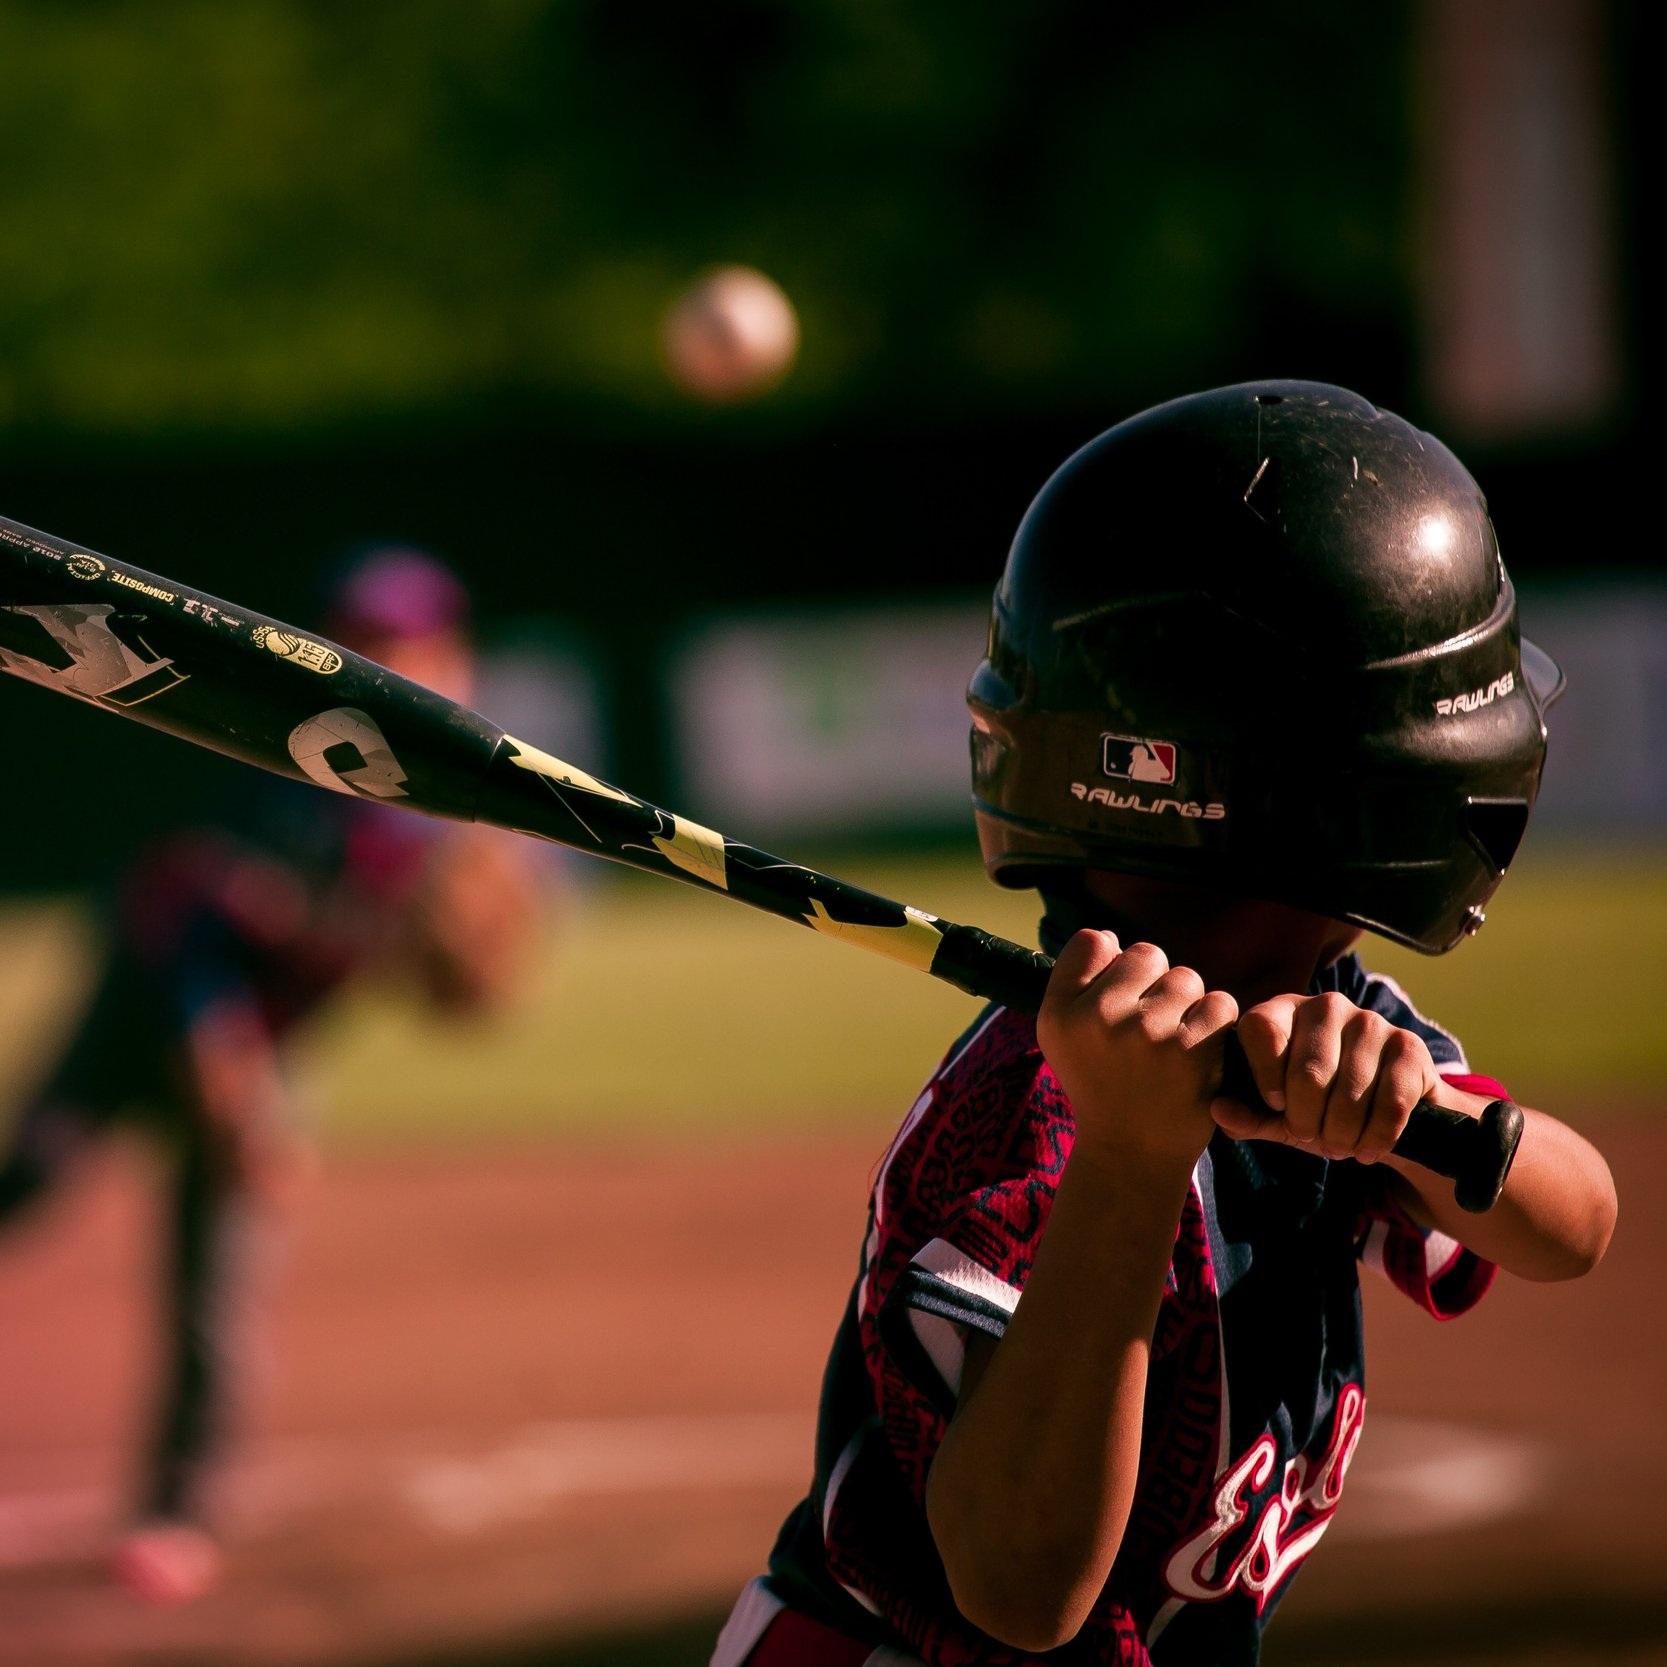 BASEBALL - ''Baseball is a sport which promotes good health, social skills, teamwork, develops physical coordination, is inclusive for beginners and skilled participants of all ages or gender and is fun.''Did you know that this month there's a major youth baseball competition taking place?